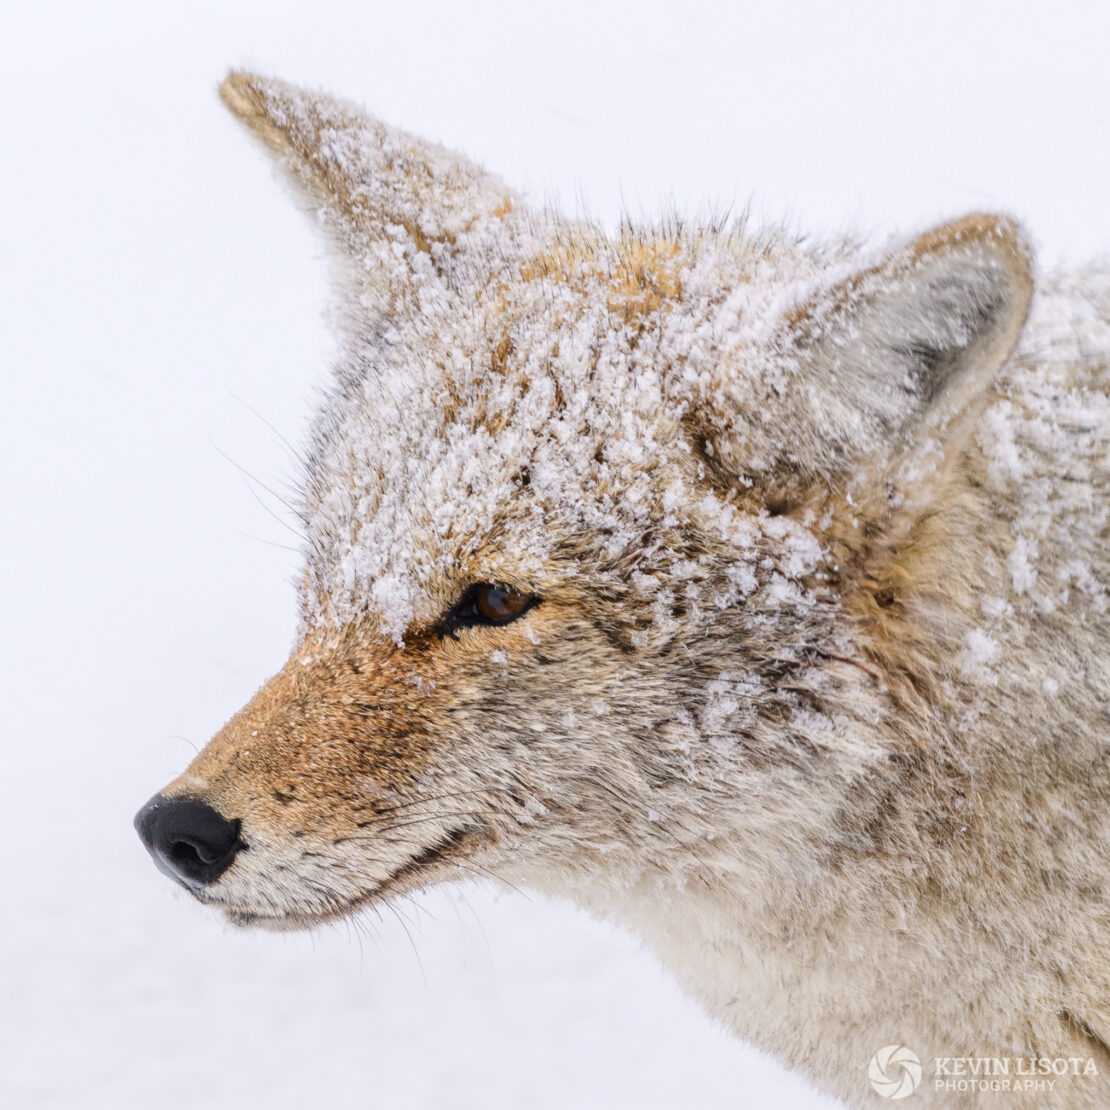 Snow-covered coyote